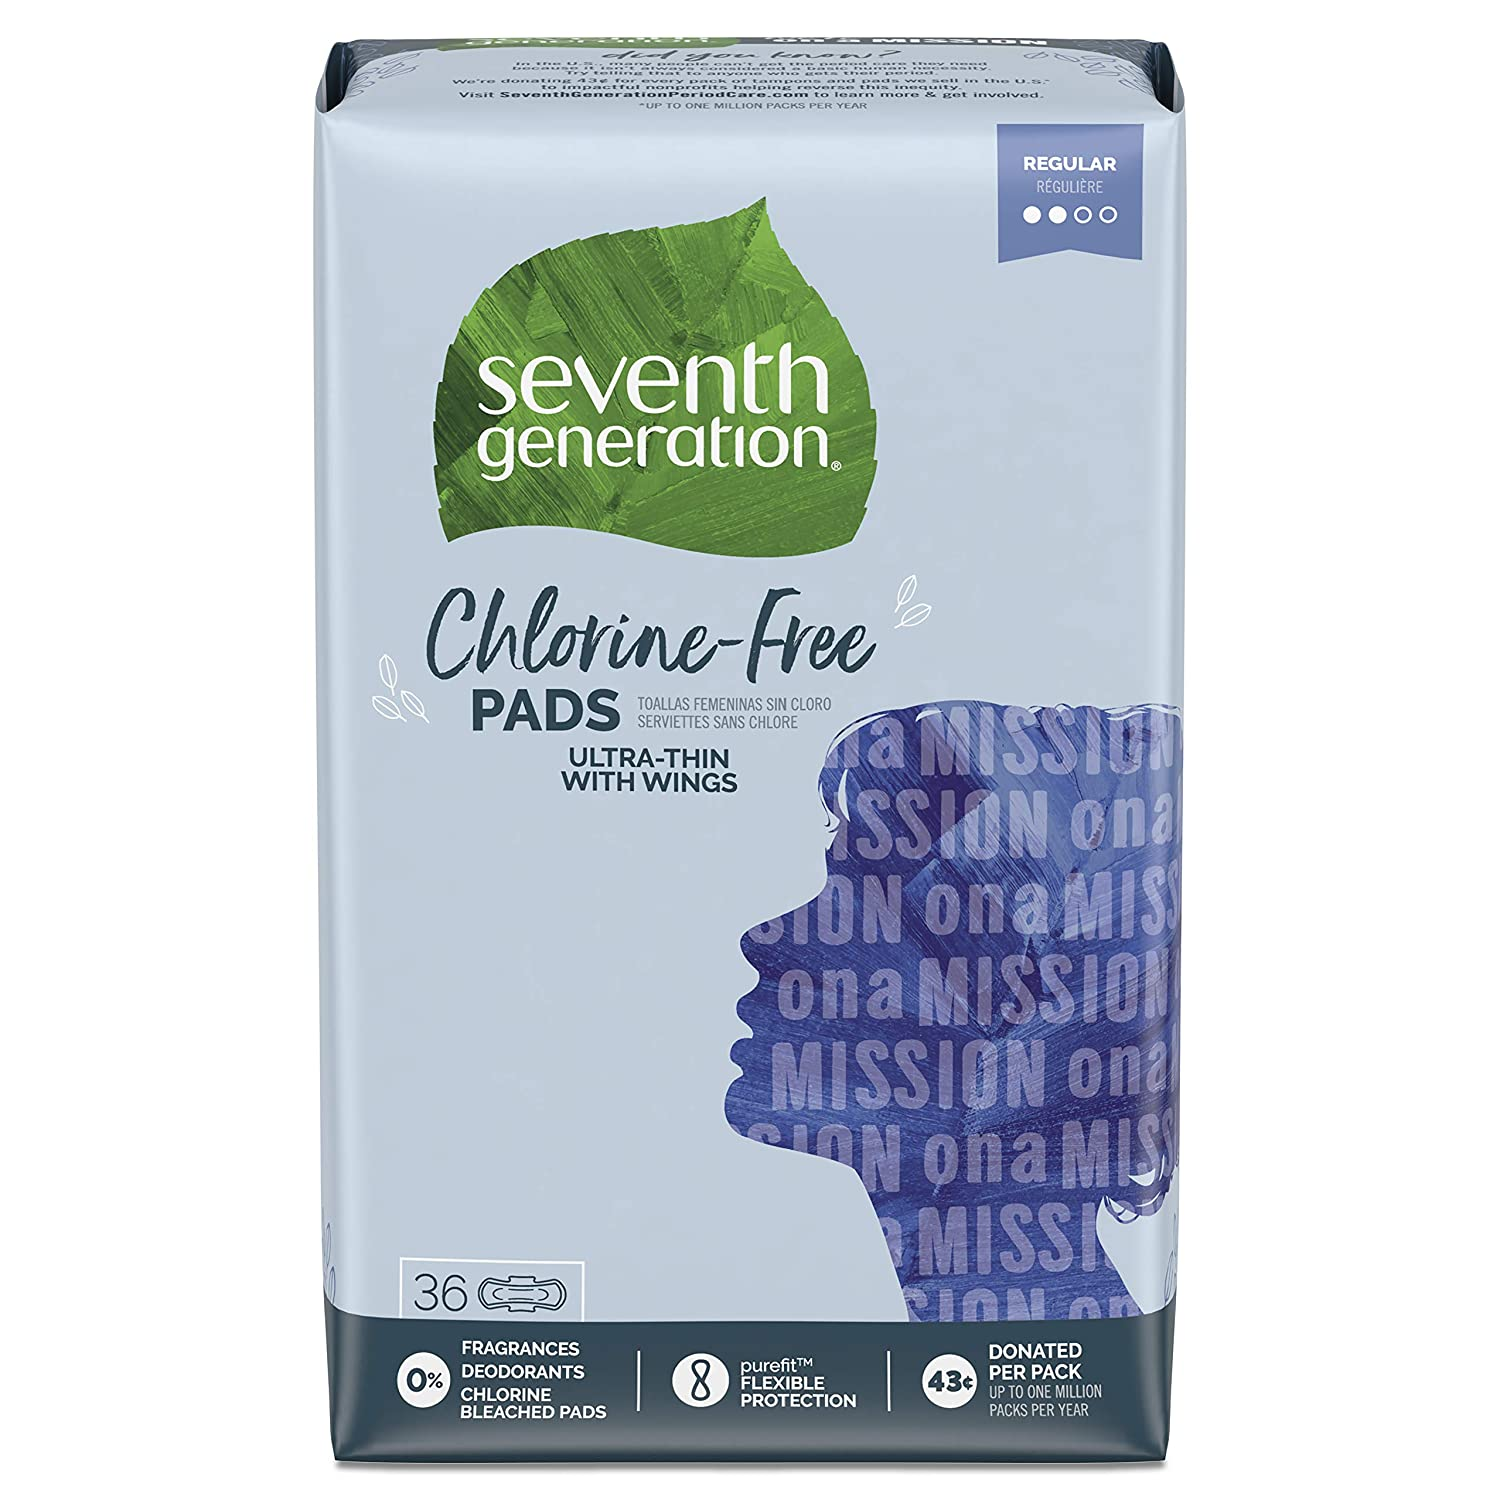 Seventh Generation Ultra Thin Pads with Wings, Regular Absorbency, Chlorine Free, 36 Count (Packaging May Vary)